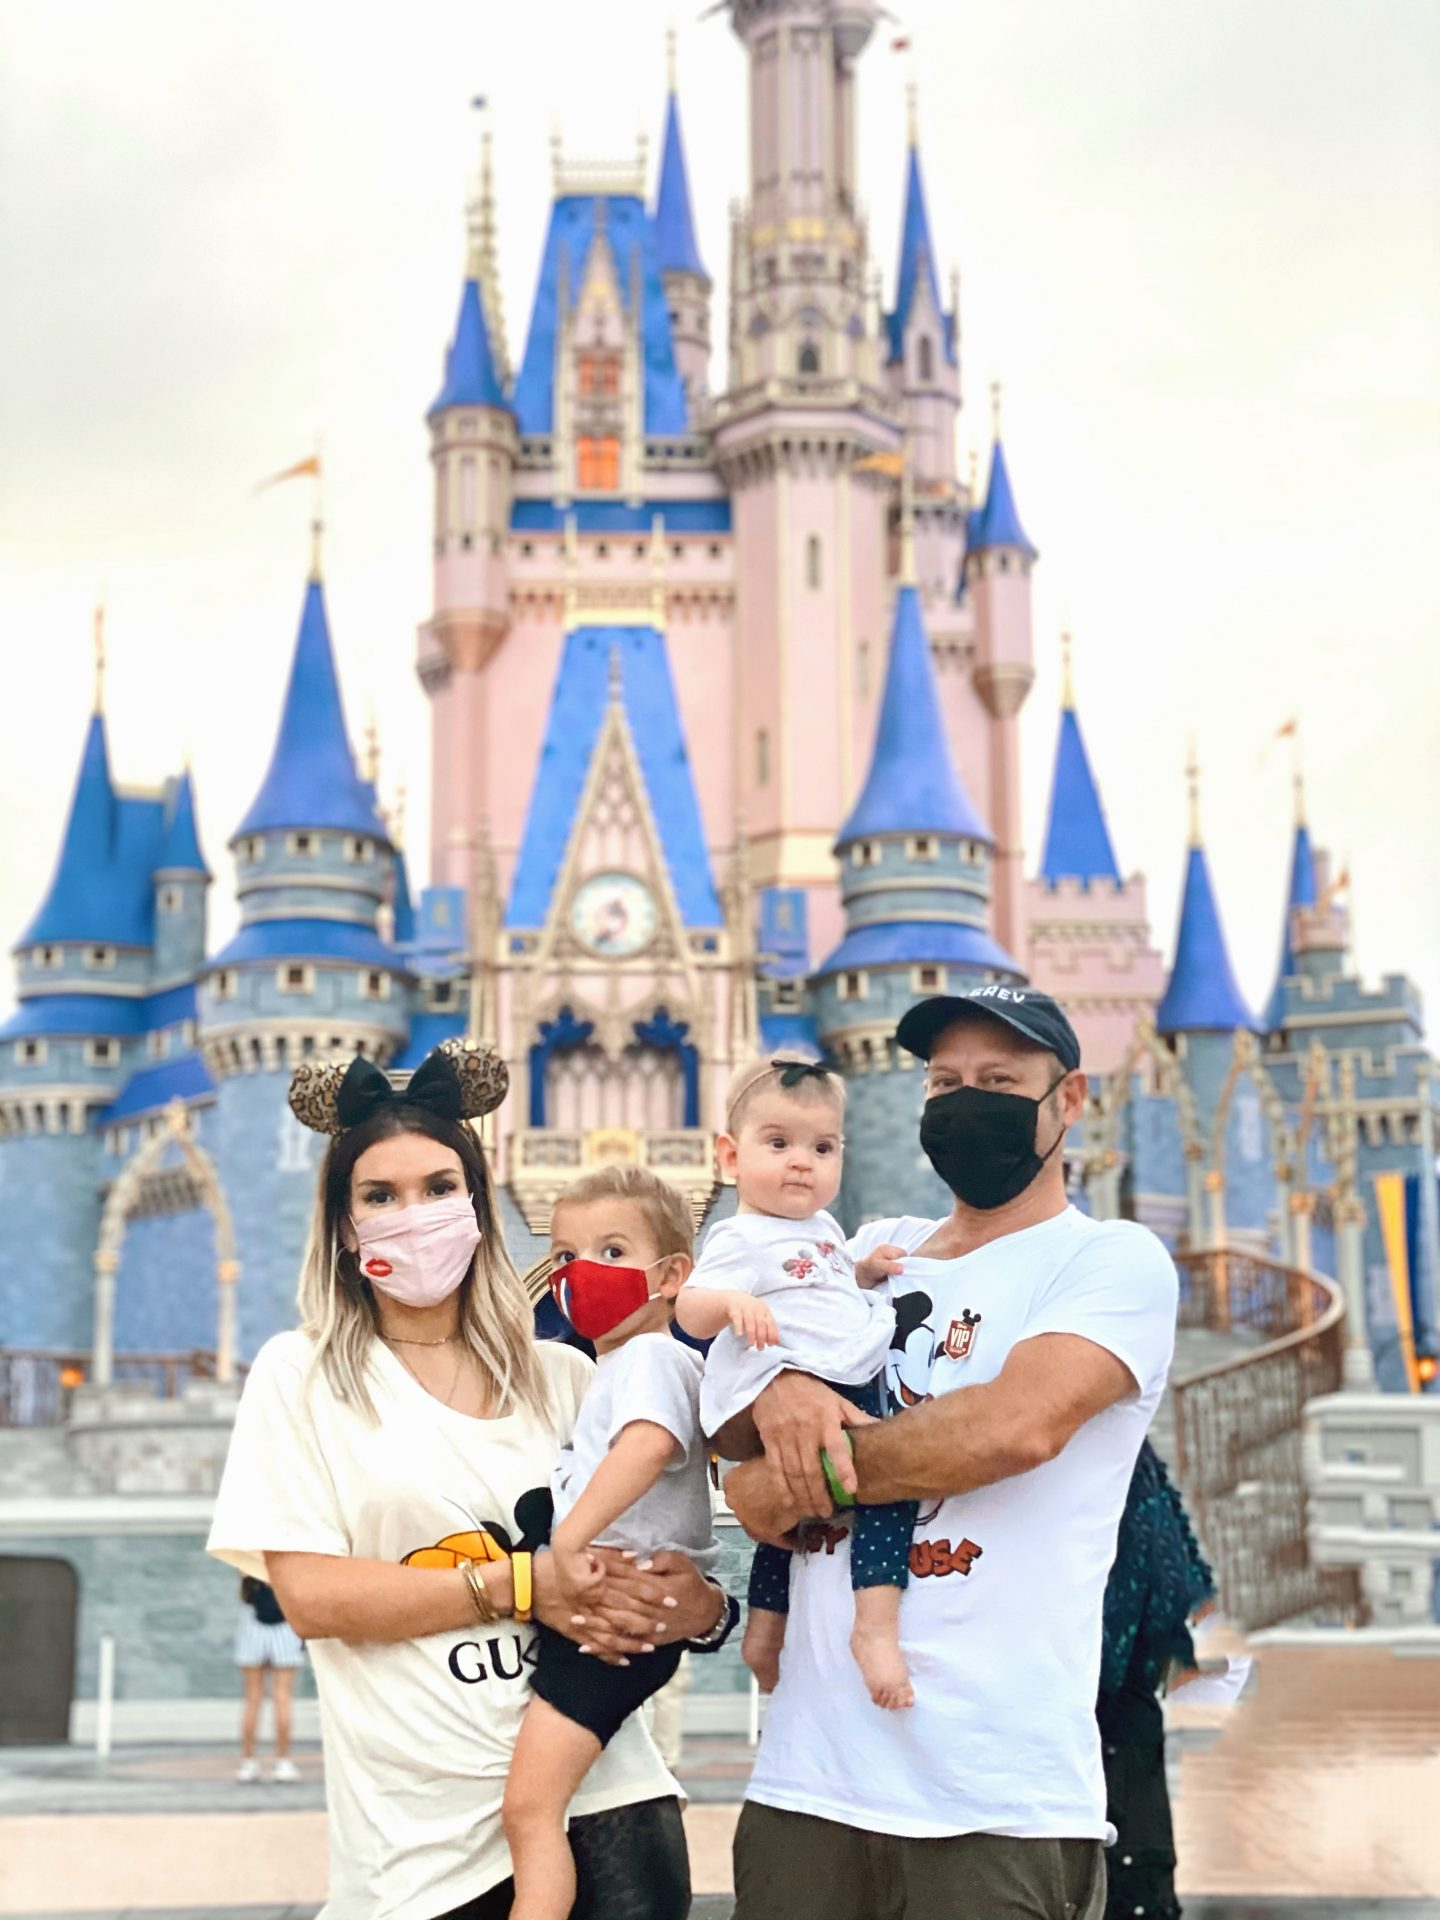 Disney world, Disney, Disney during covid, travel blogger, travel blog, mom blogger, mommy blogger, mom blog, motherhood, travel, traveling family, Dr. Michael Horn, family vacation, traveling with kids